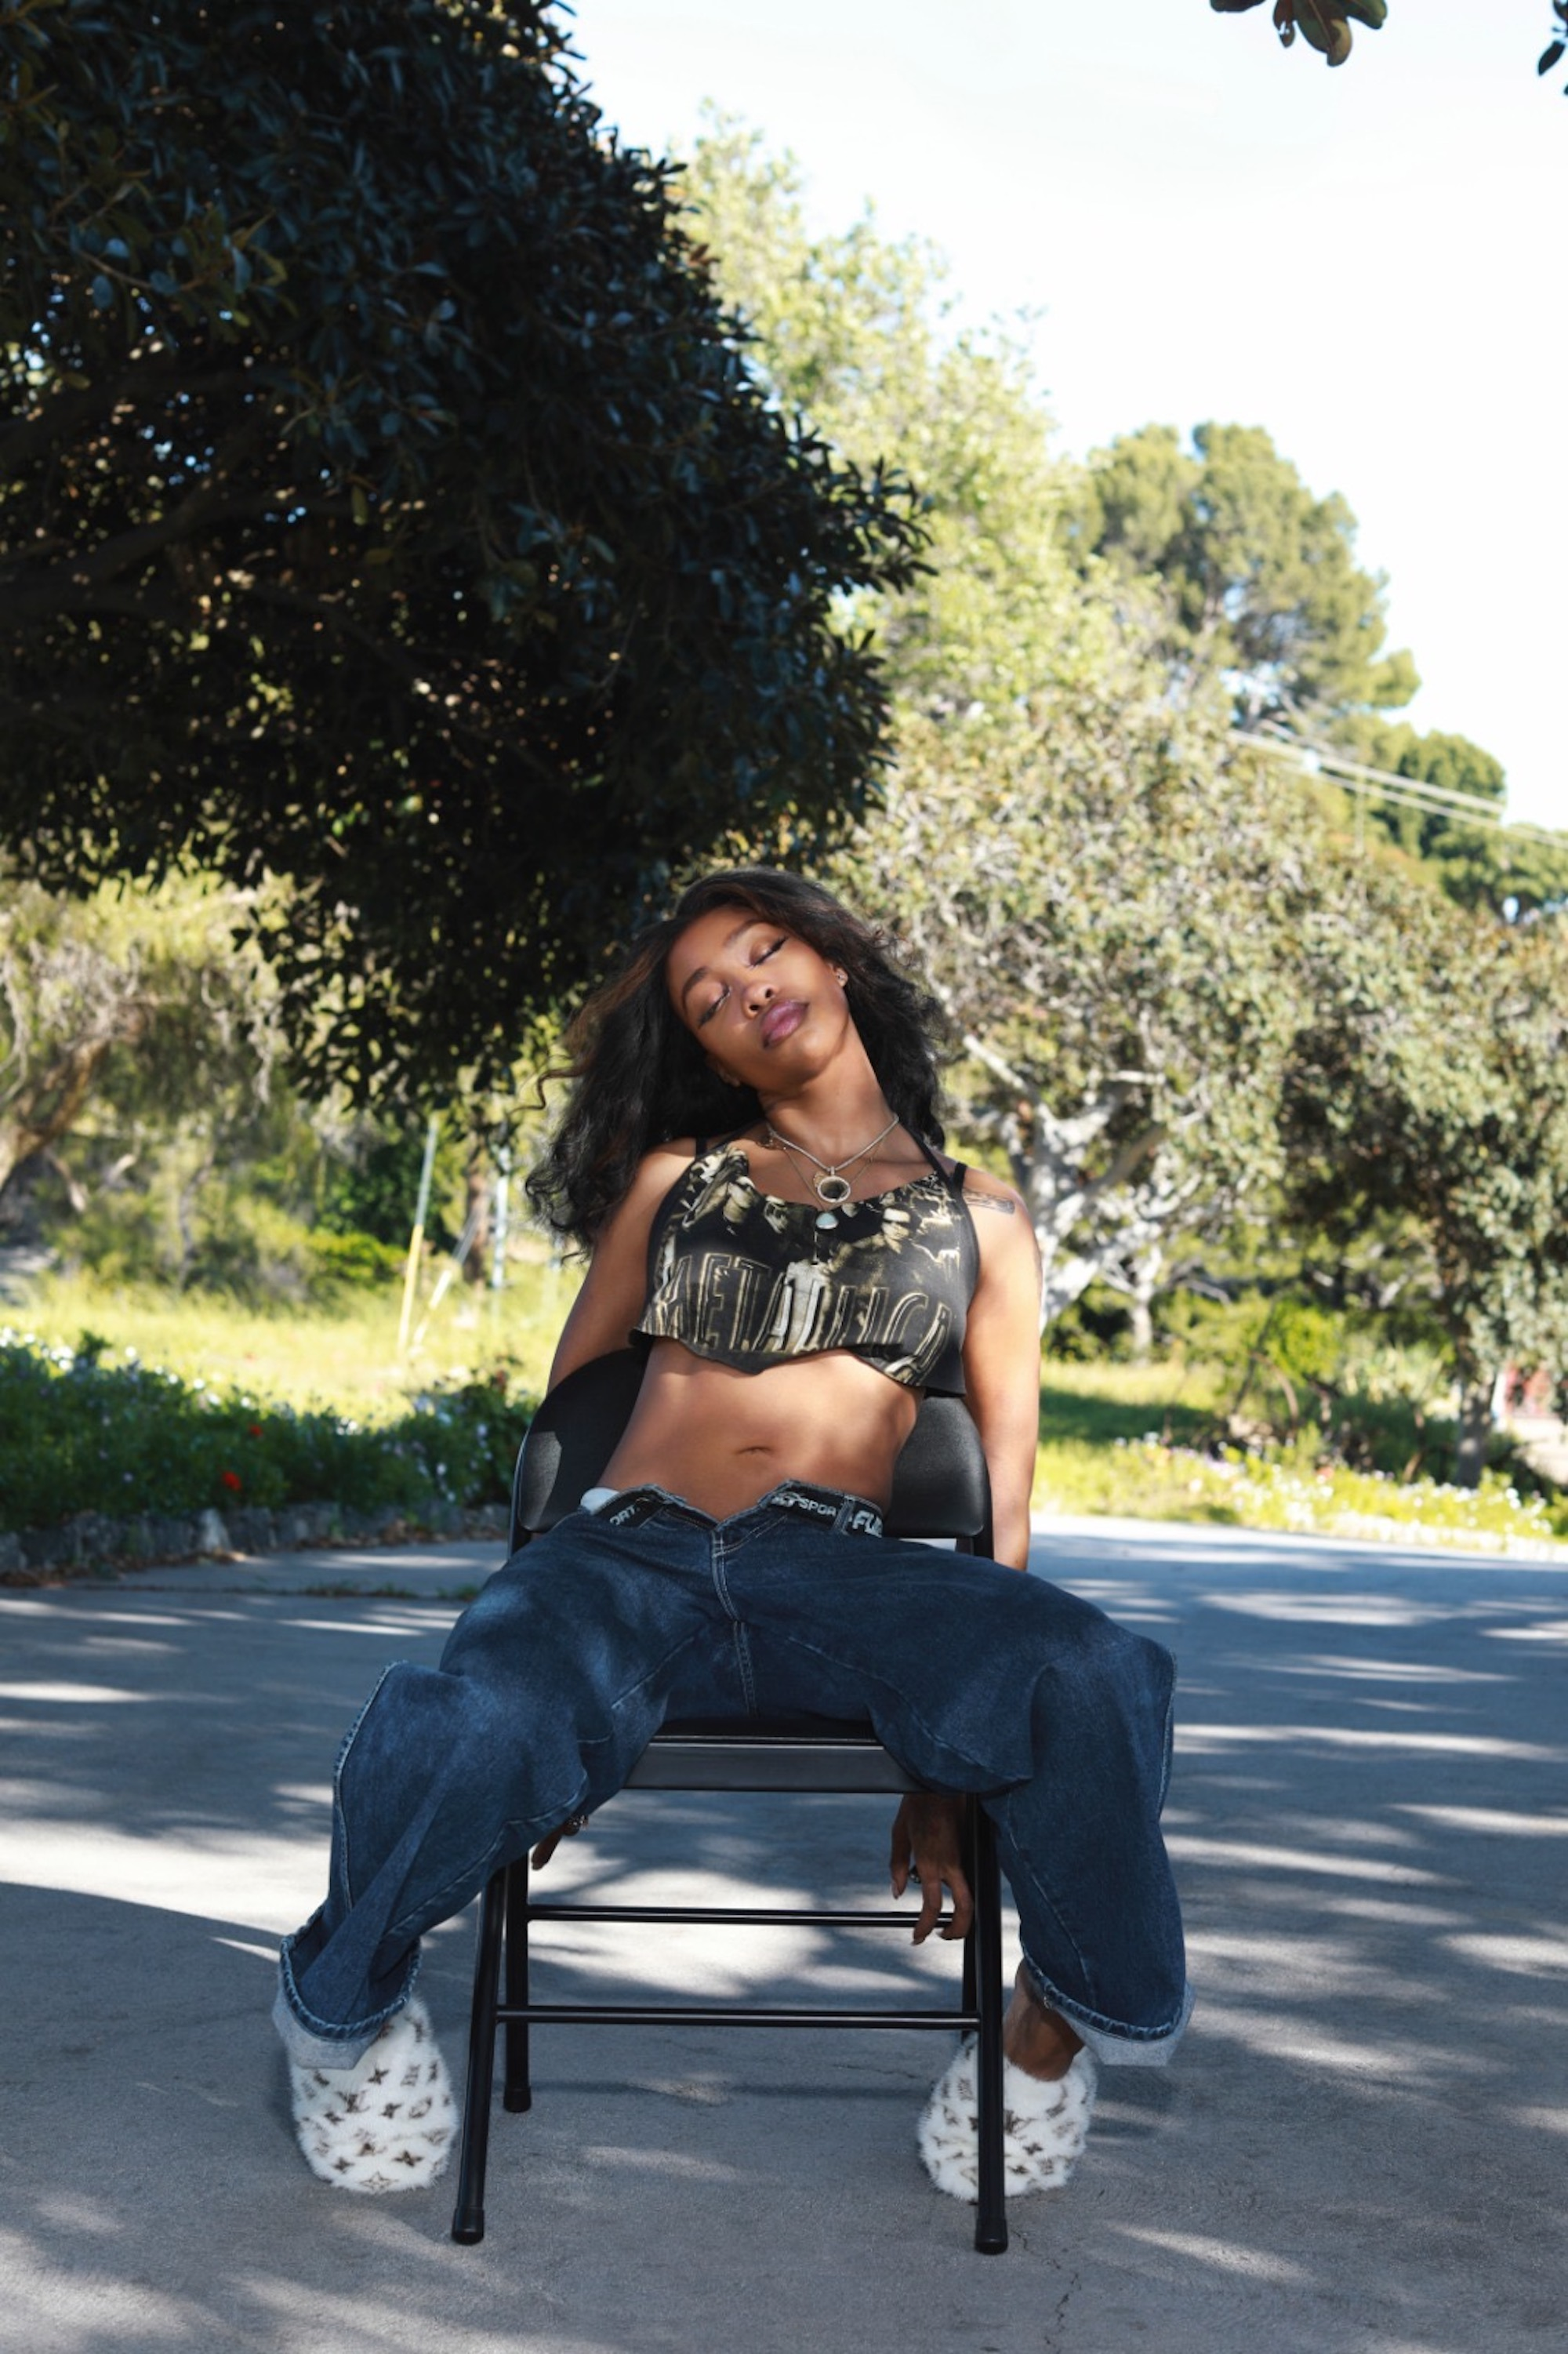 SZA sitting on a chair outside in jeans and green top